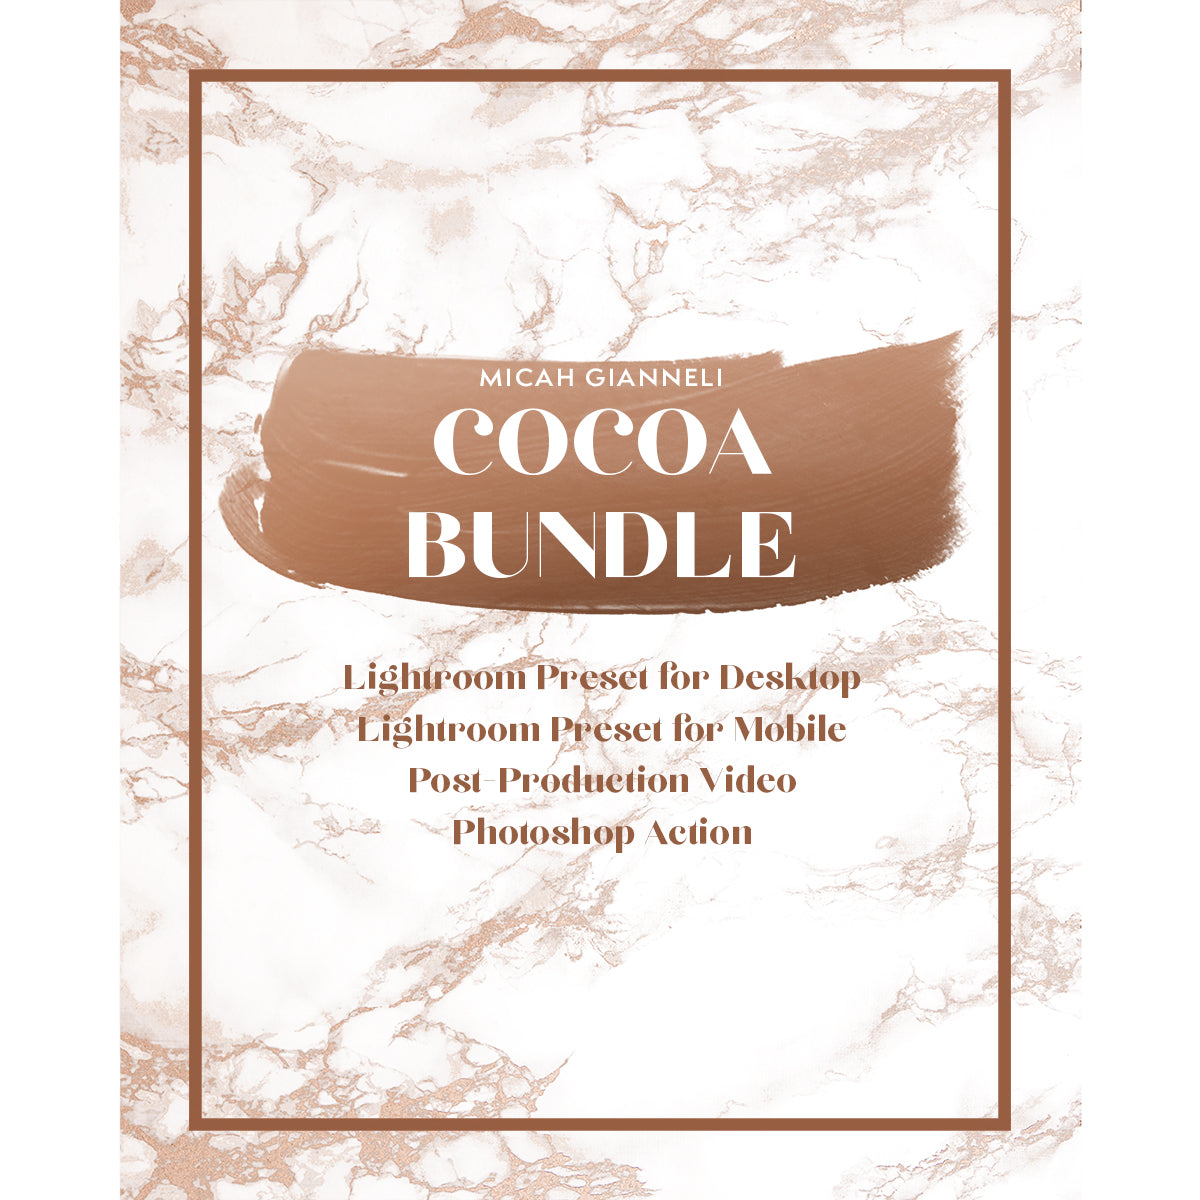 Cocoa Bundle